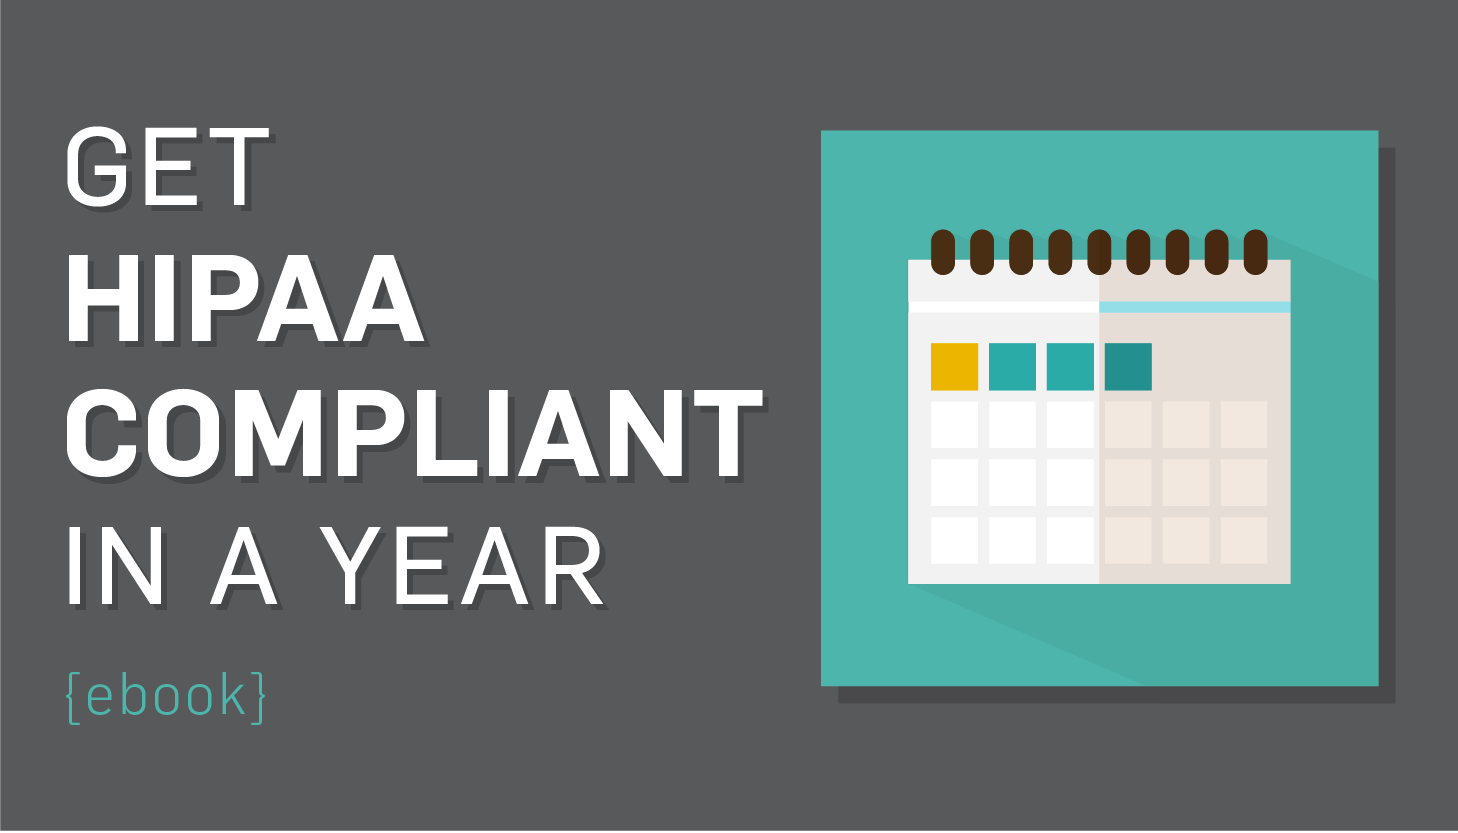 Implementing HIPAA: A 12-Month HIPAA Plan to Get Compliant